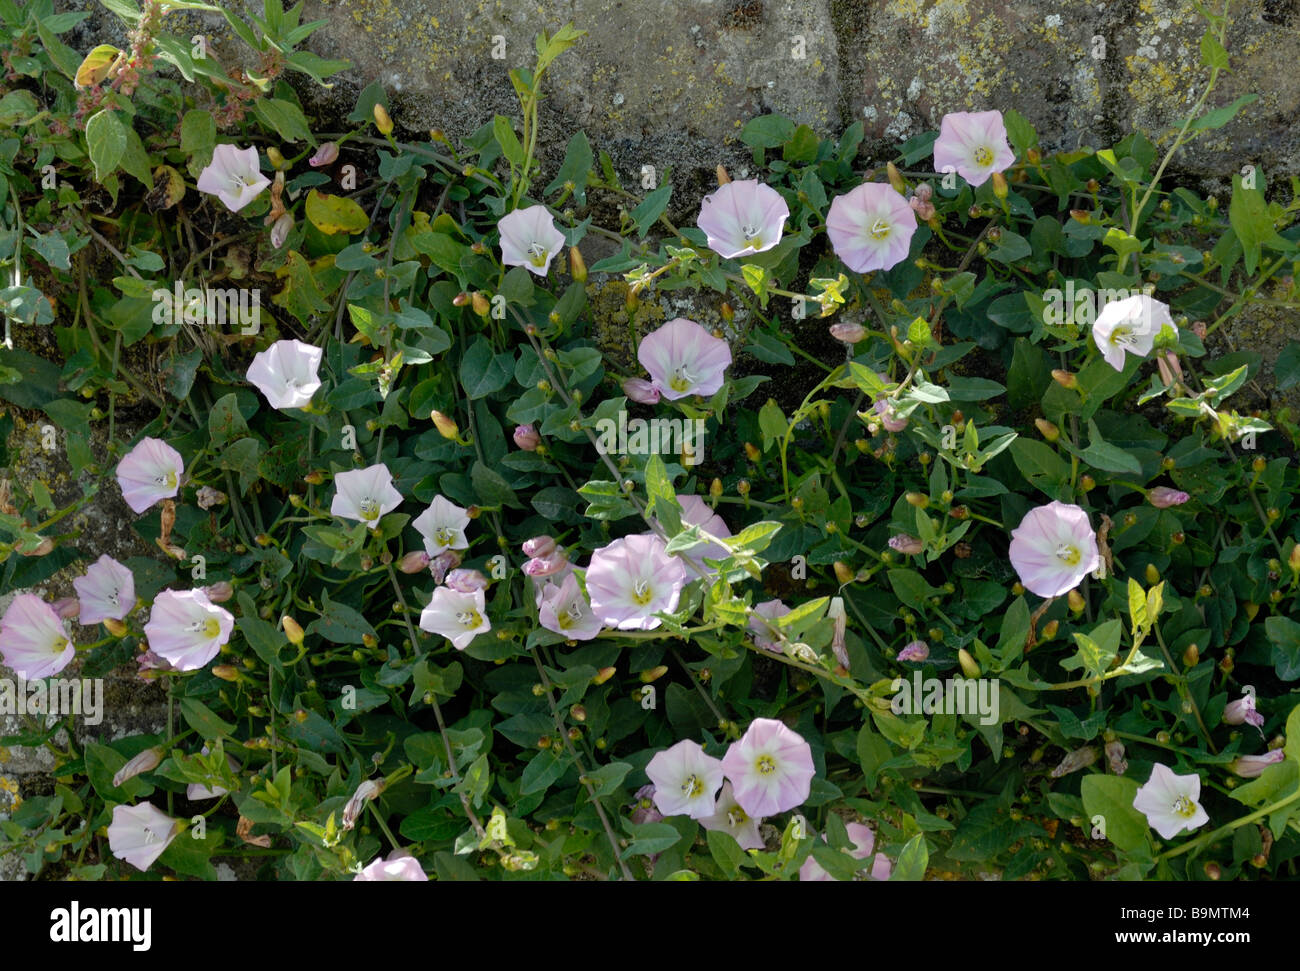 Field Bindweed (Convolvulus arvensis) with its pink and white trumpet shaped flowers climbs up a garden stone wall - Stock Image